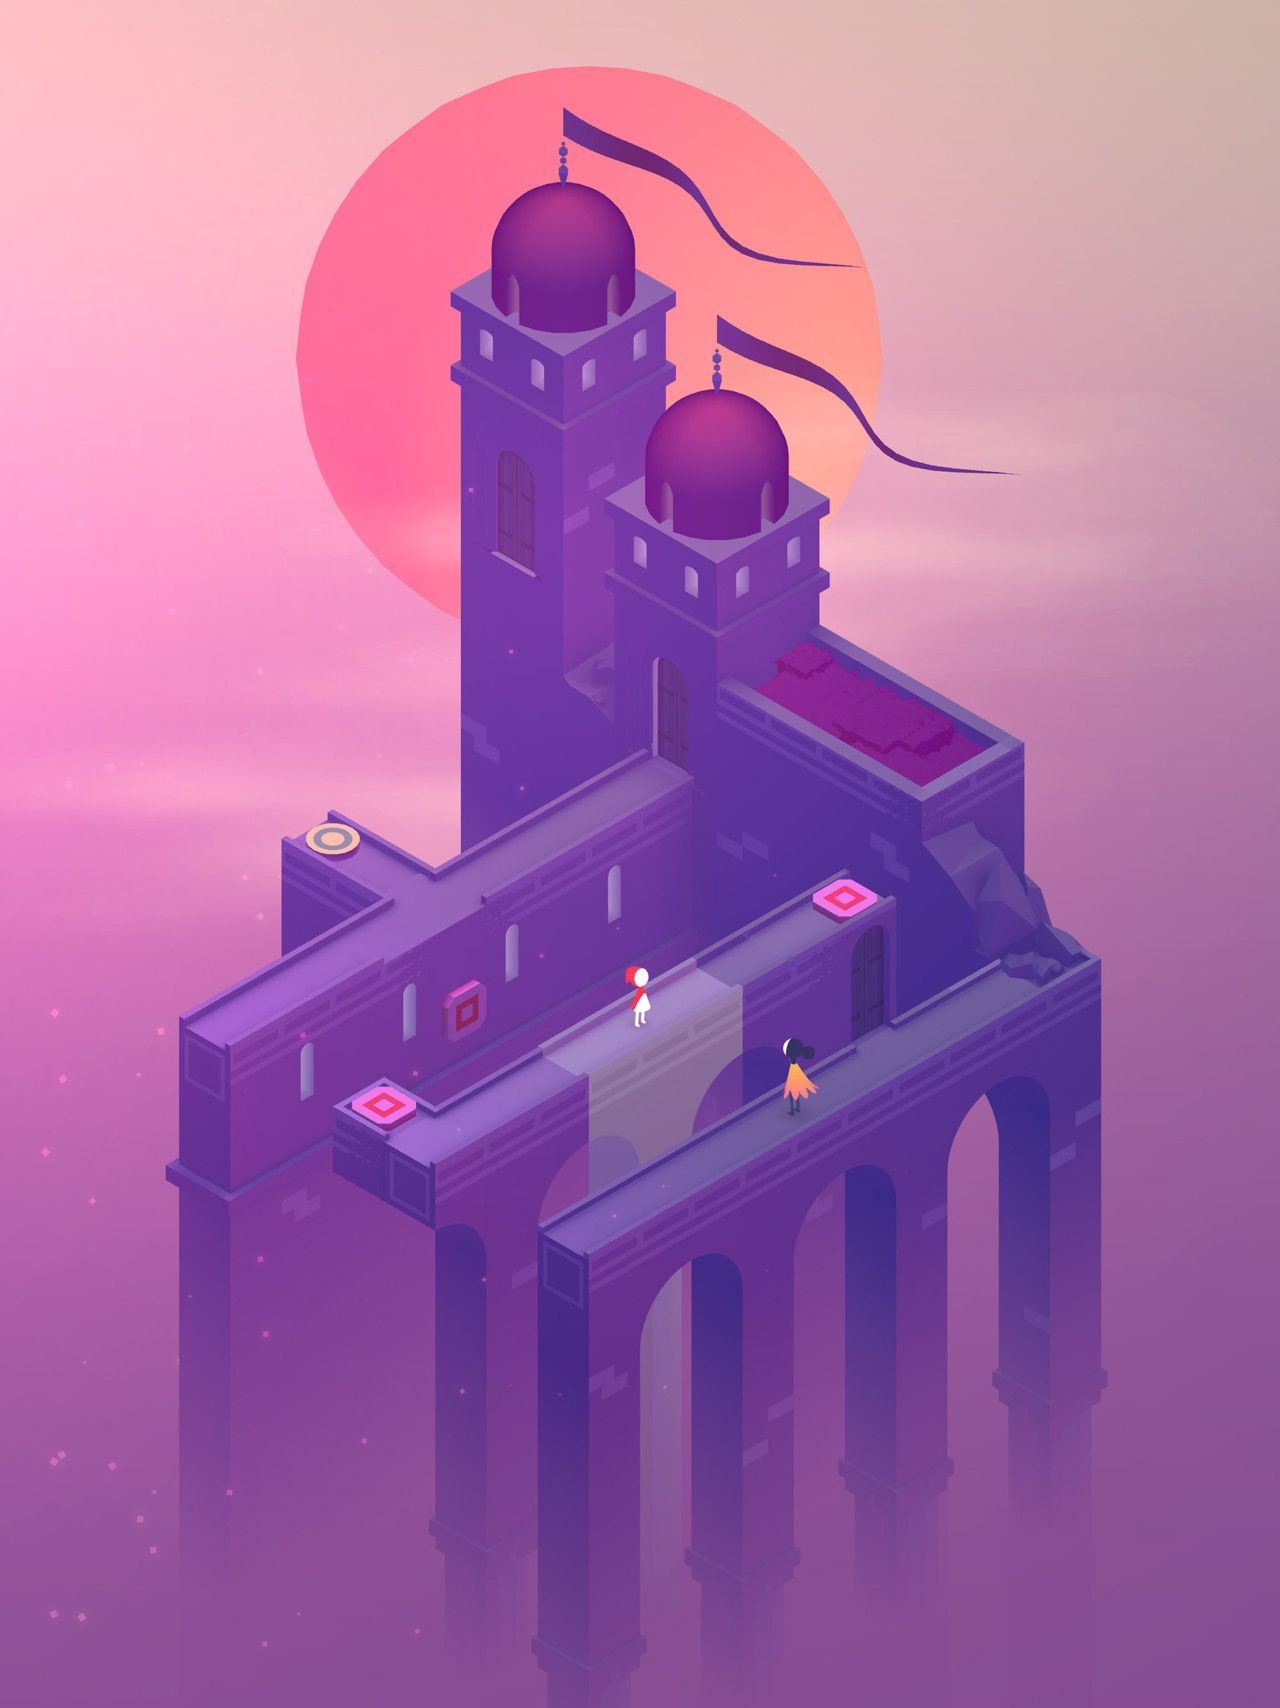 Monument Valley 2 Delves Deeper Into The Architecture Of The